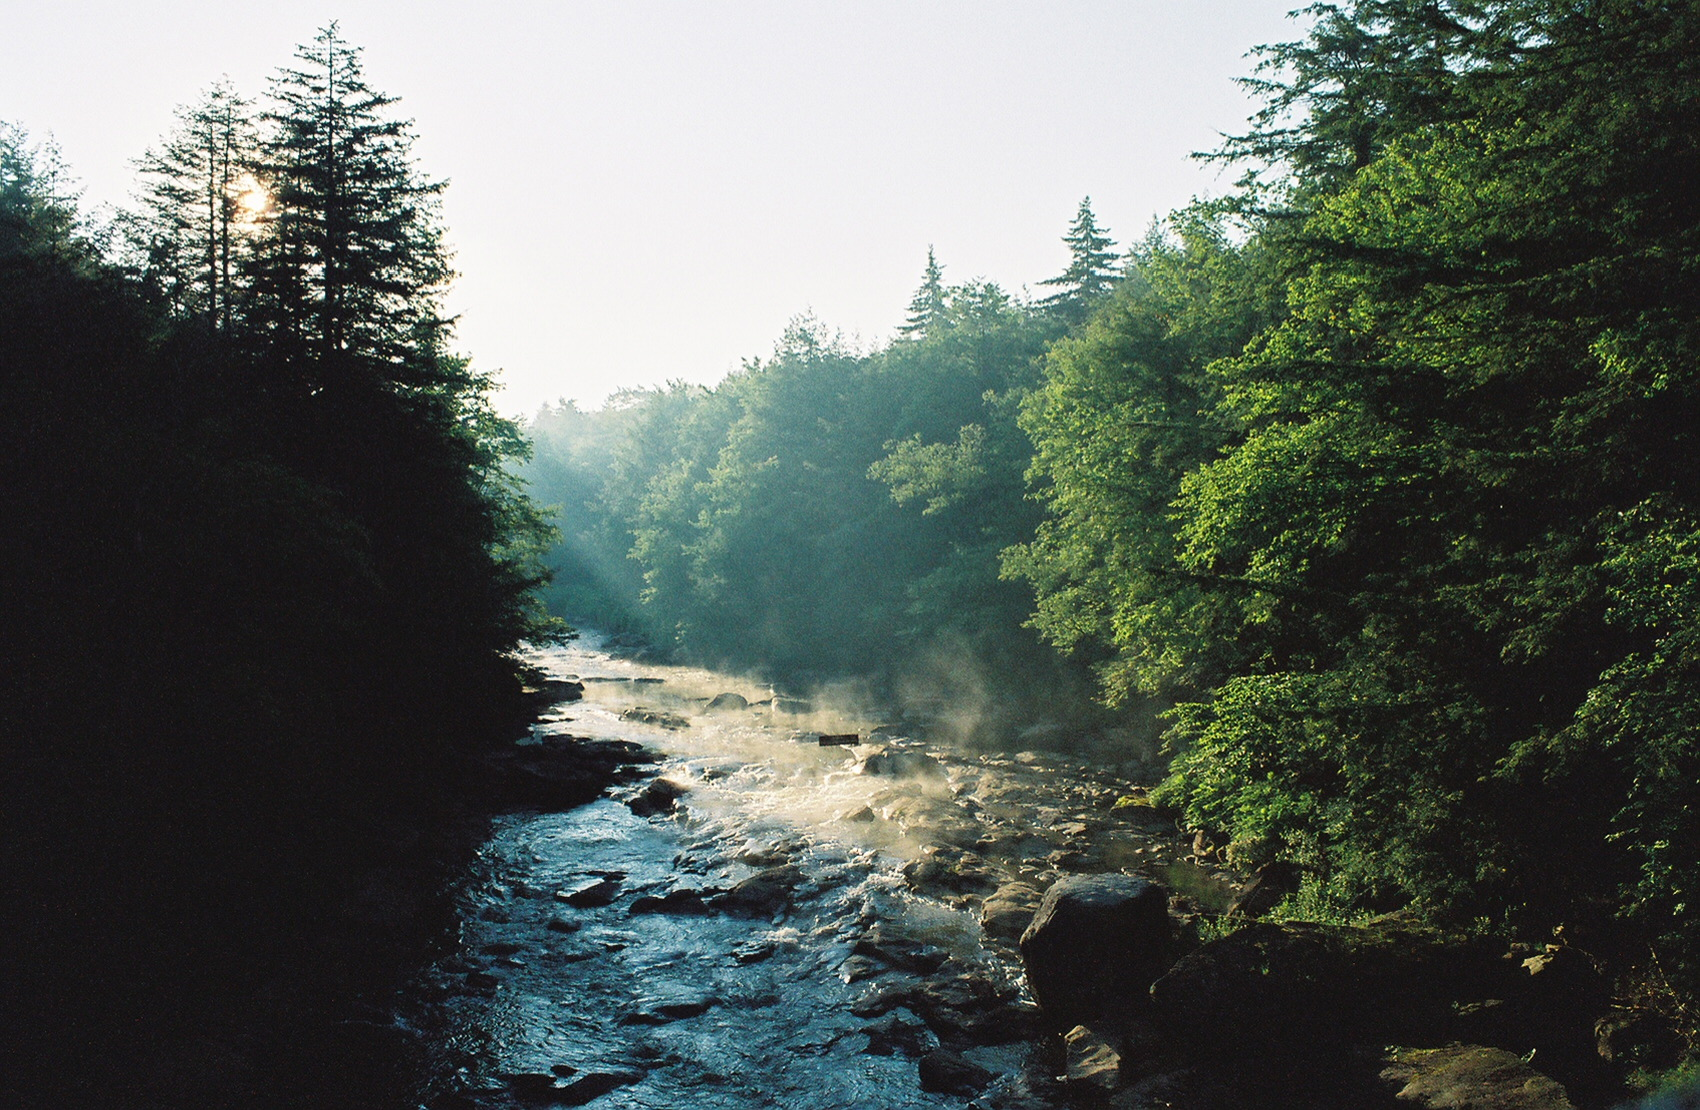 The Blackwater River in the summer season